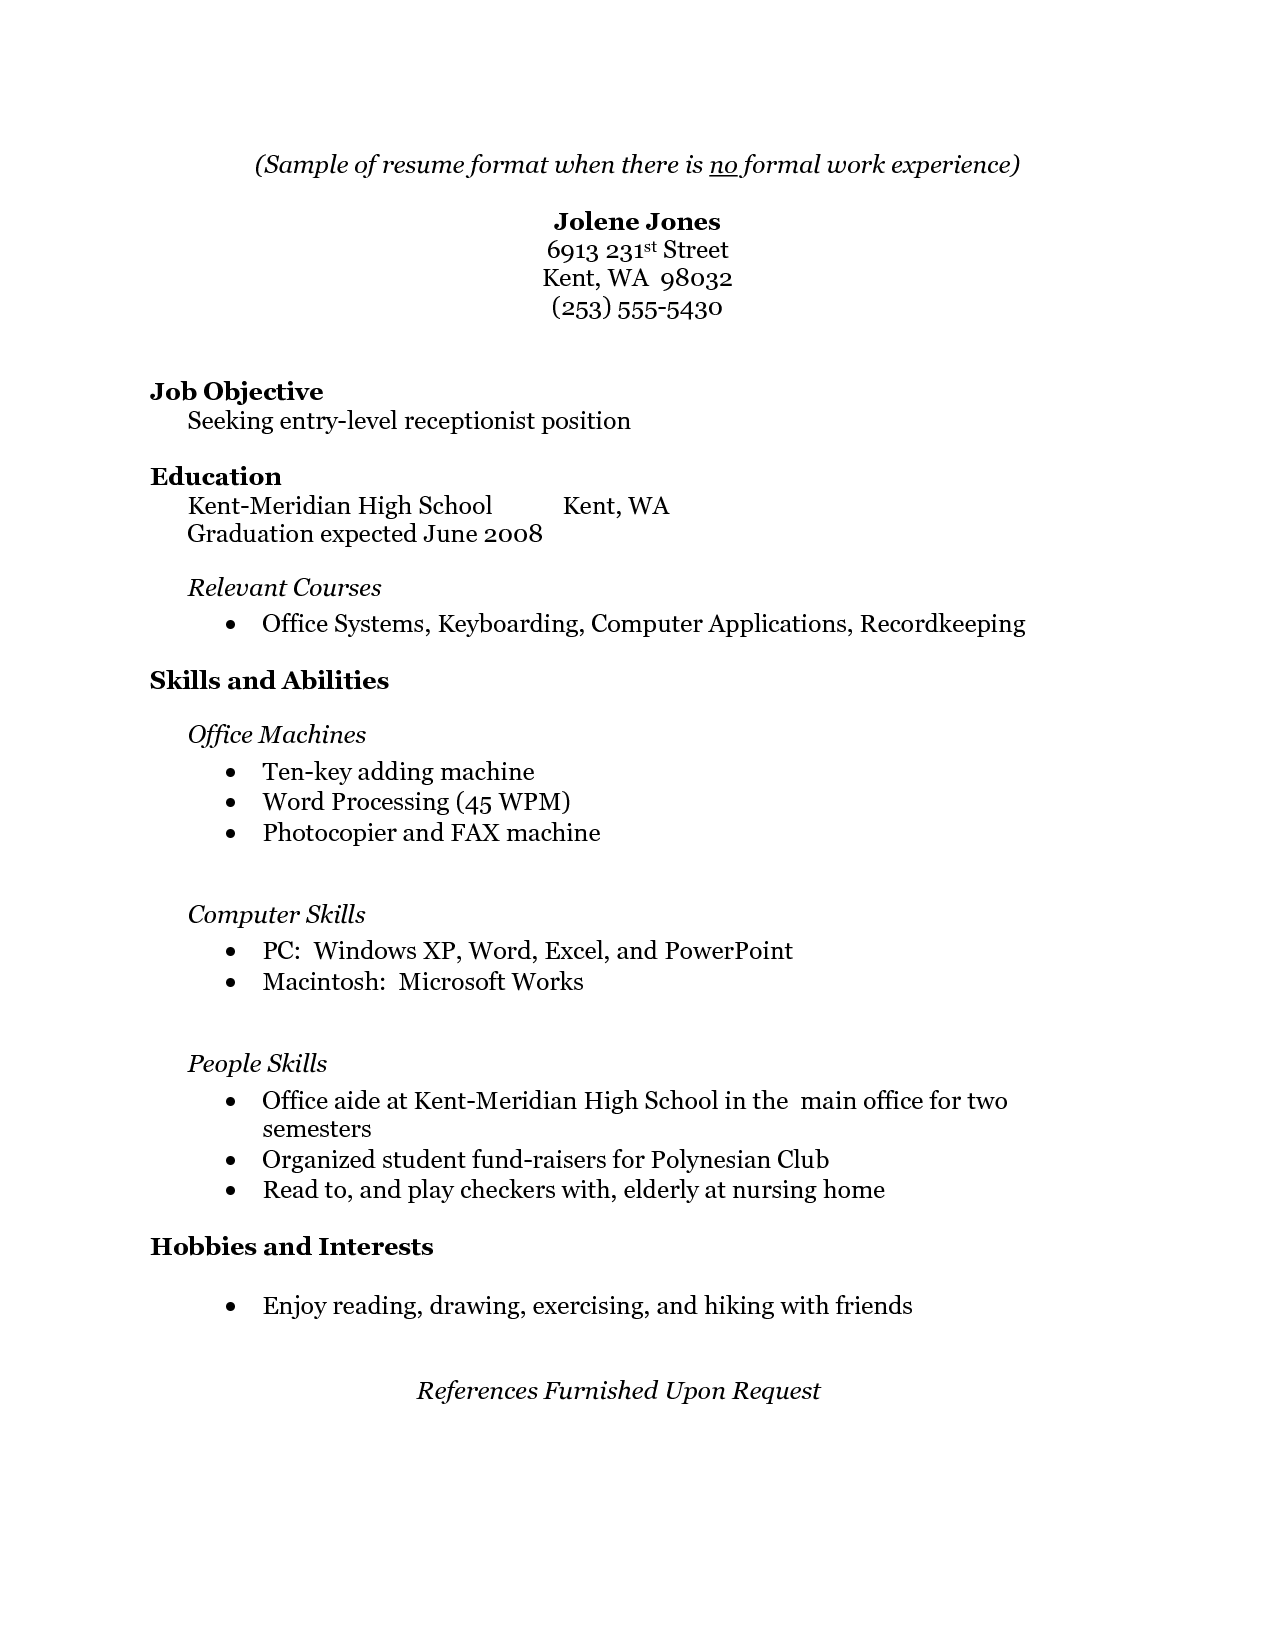 Resume Examples No Job Experience | High school resume, High ...